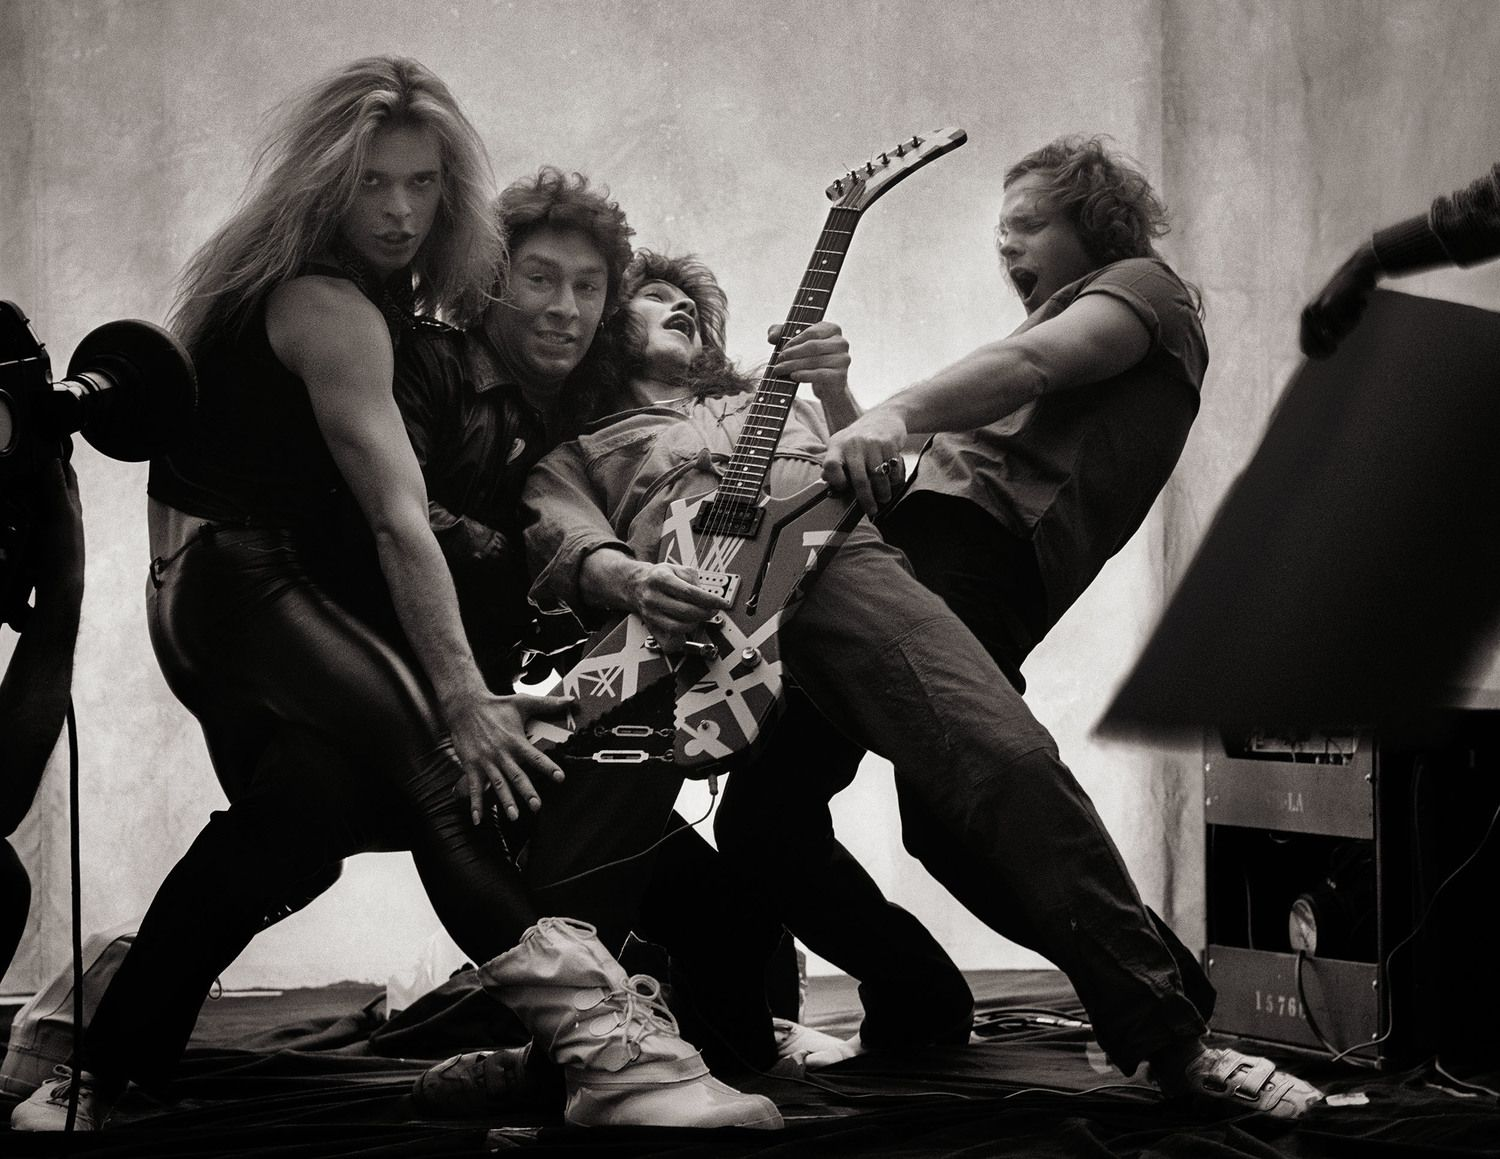 Van Halen By Norman Seeff Los Angeles 1980 Van Halen Eddie Van Halen David Lee Roth